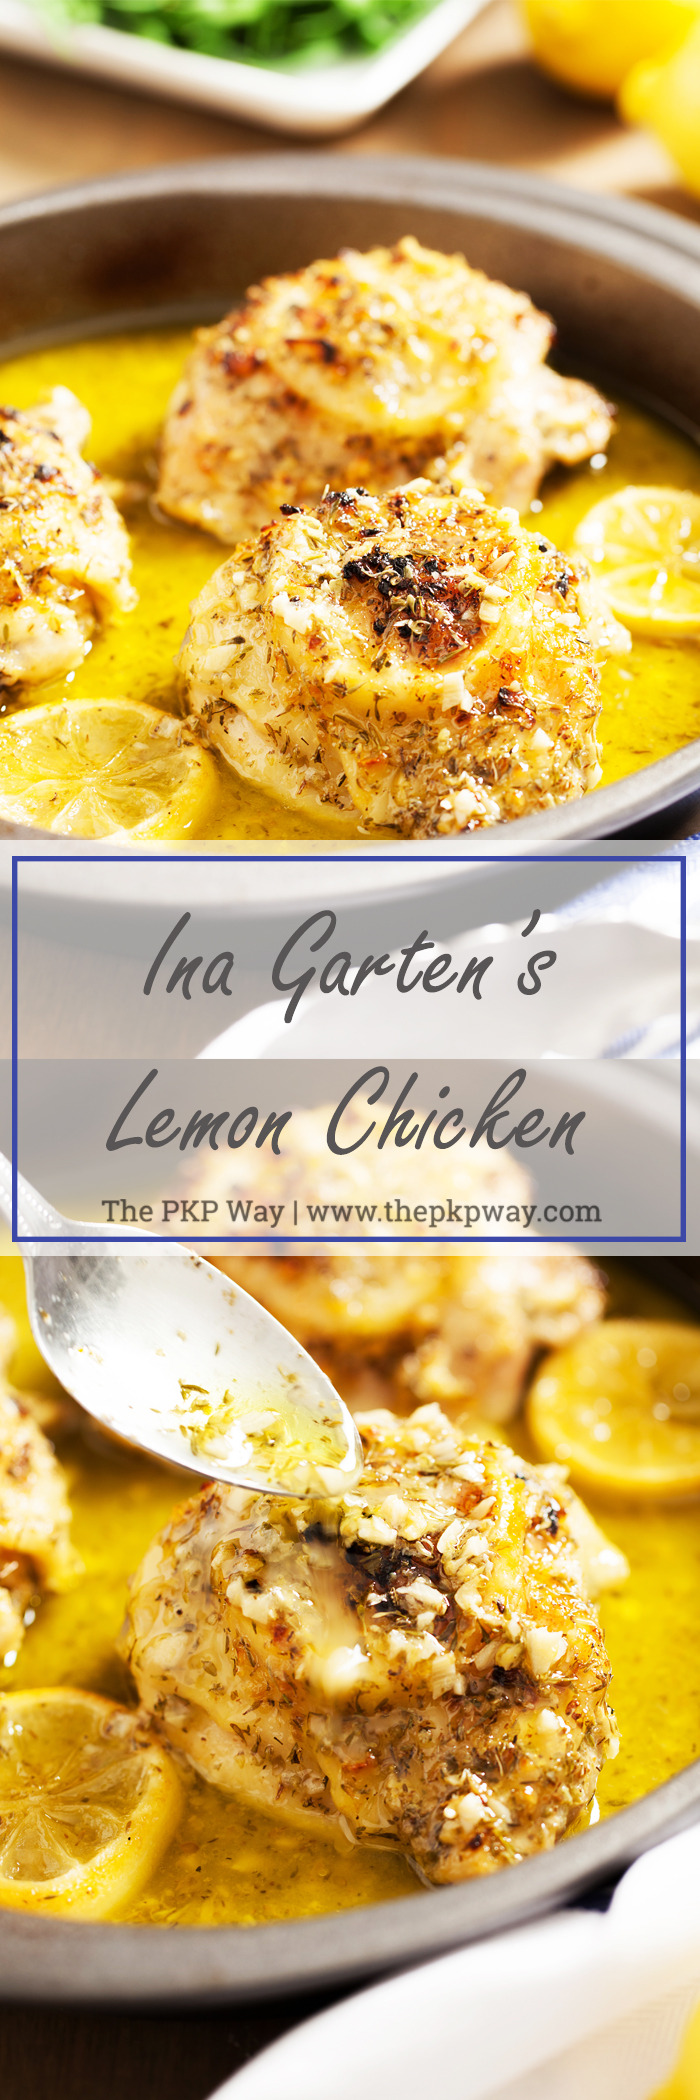 From the Barefoot Contessa herself, Ina Garten's Lemon Chicken is juicy, flavorful, and oh so easy!